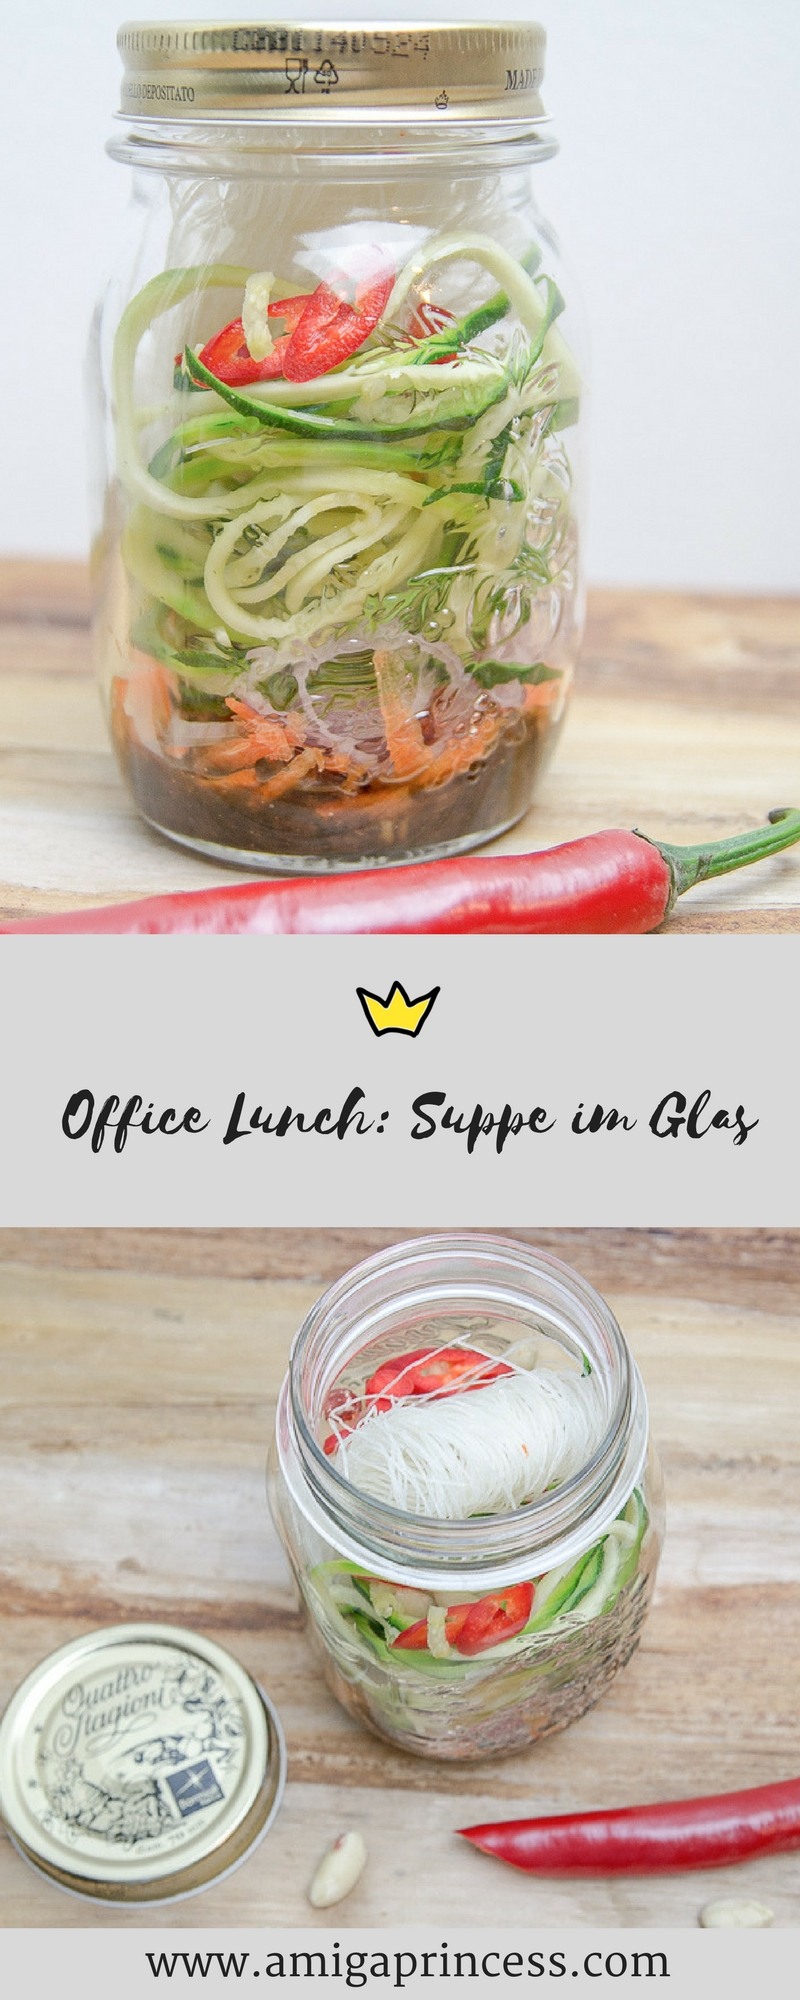 Suppe im Glas - easy office lunch 8